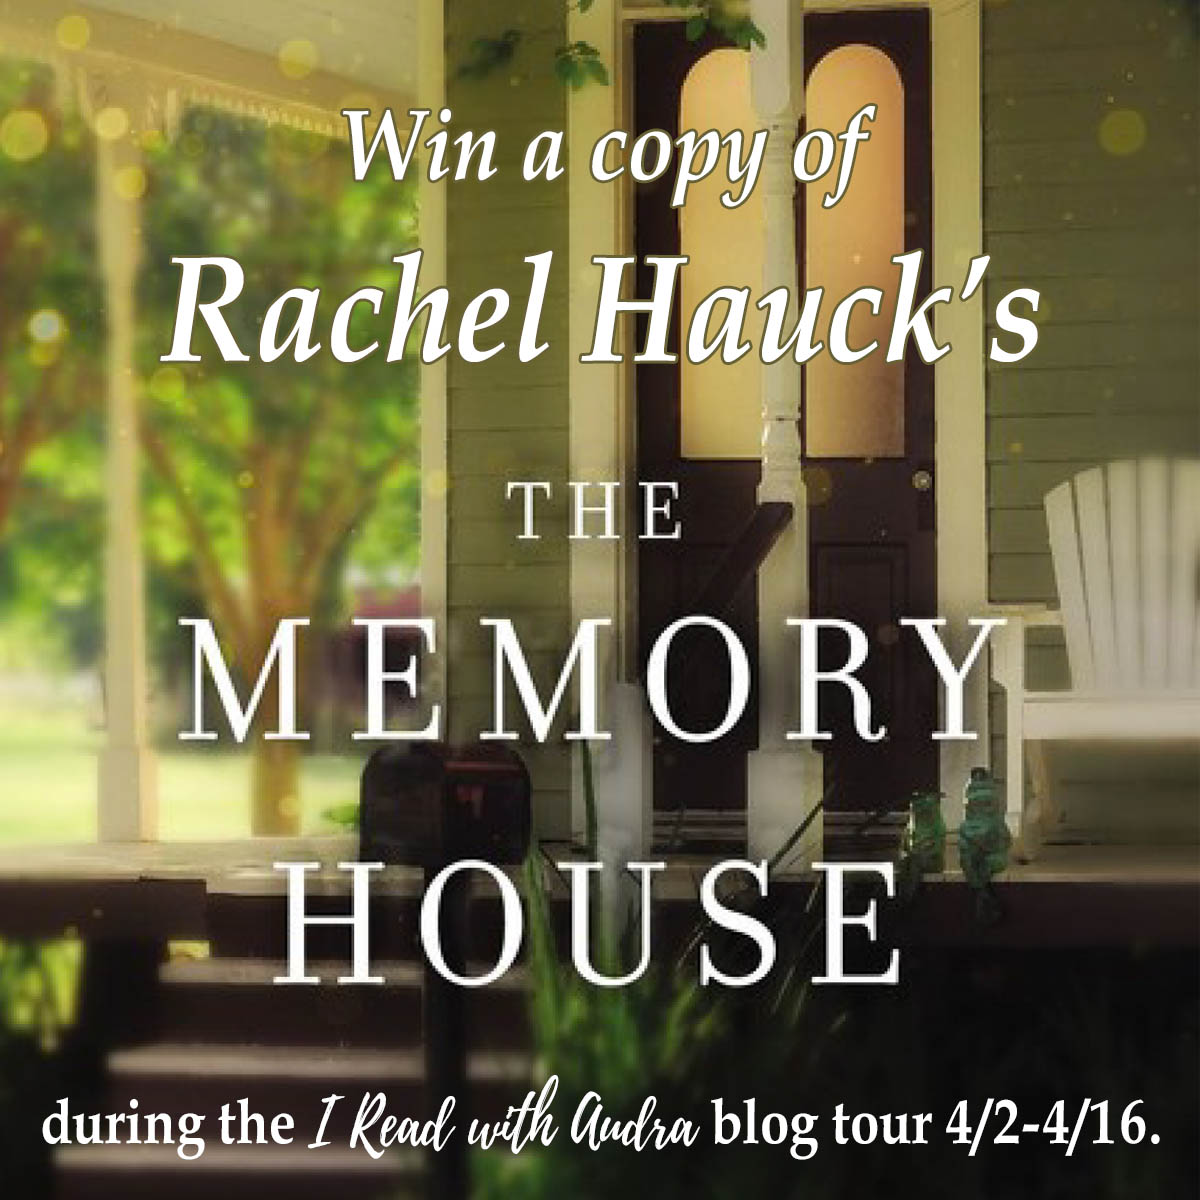 Win a copy of The Memory House!